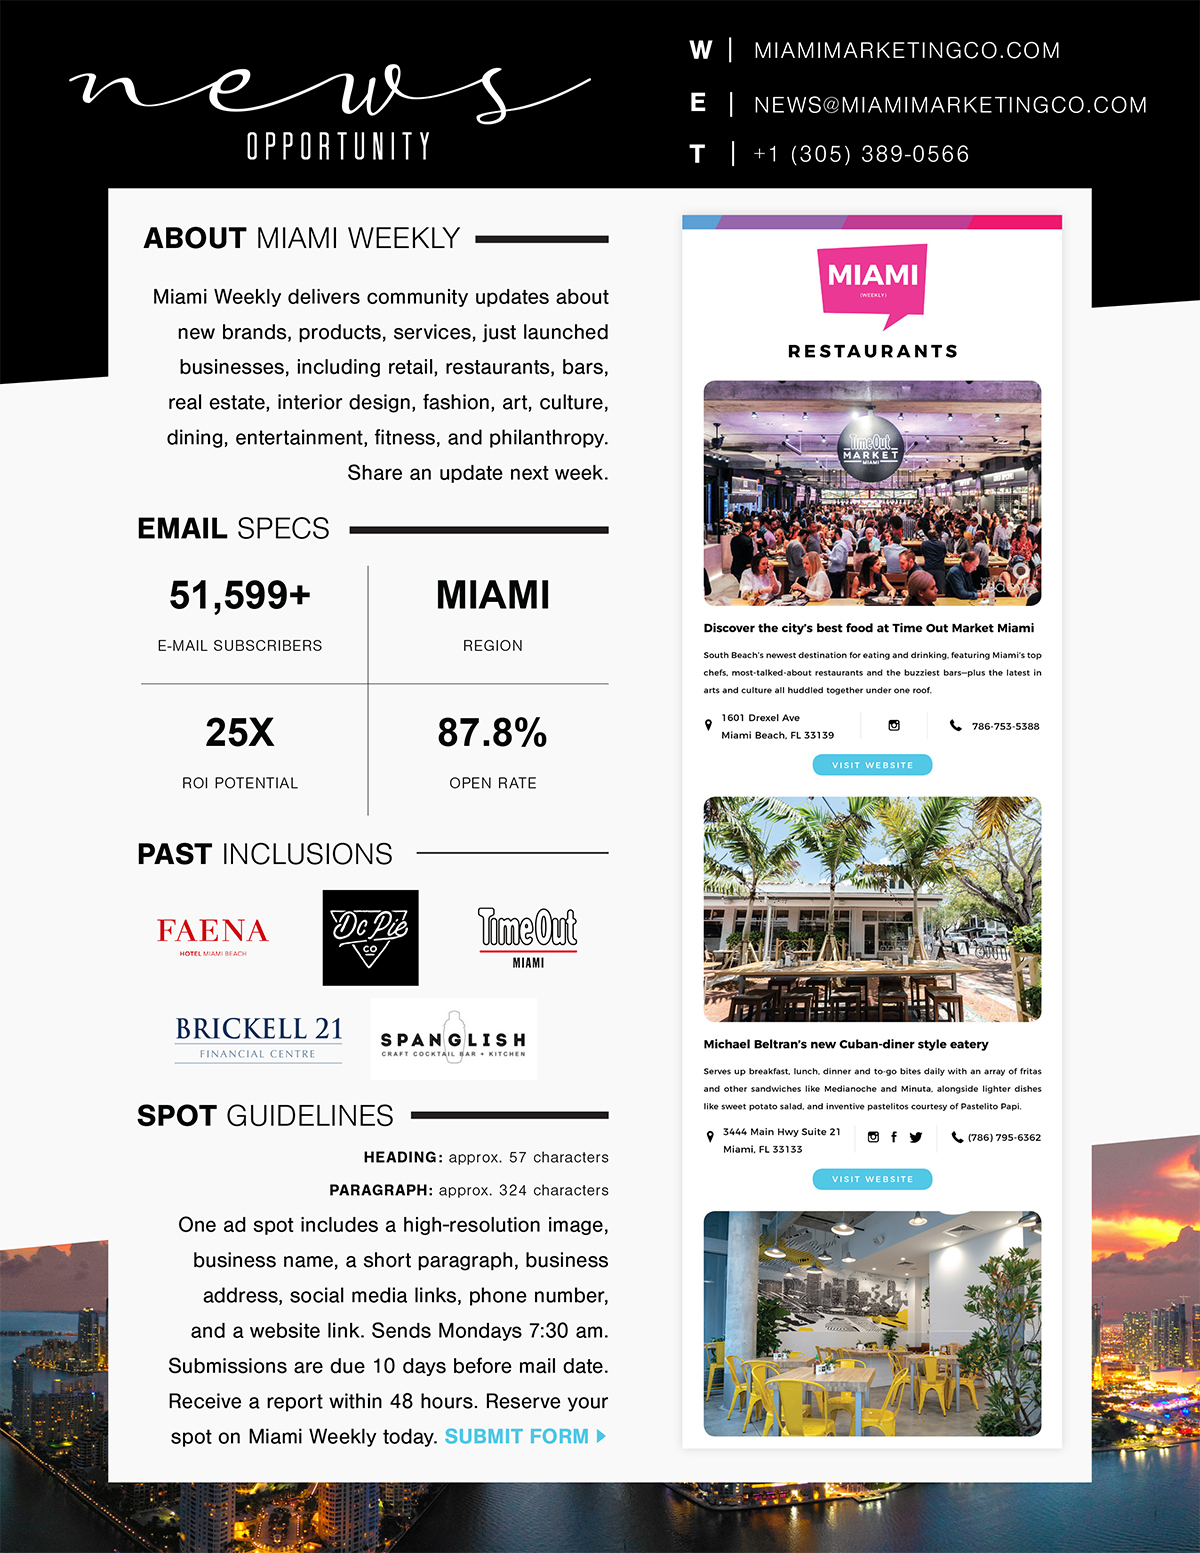 Miami Weekly Advertising Opportunity